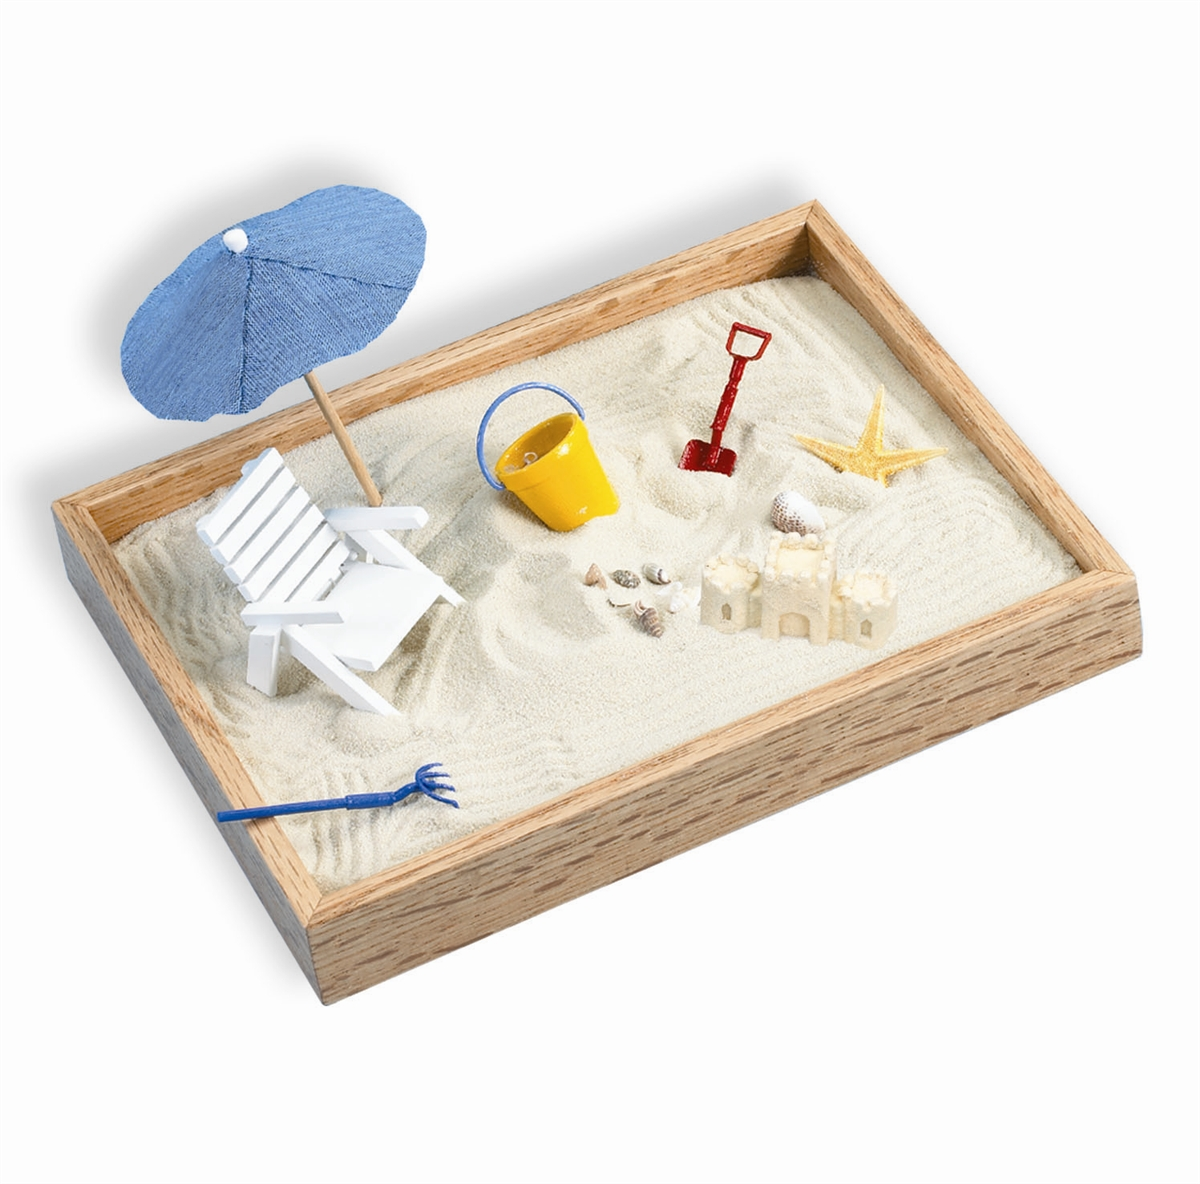 Desktop Toys For Grown Ups : Executive sandbox a day at the beach